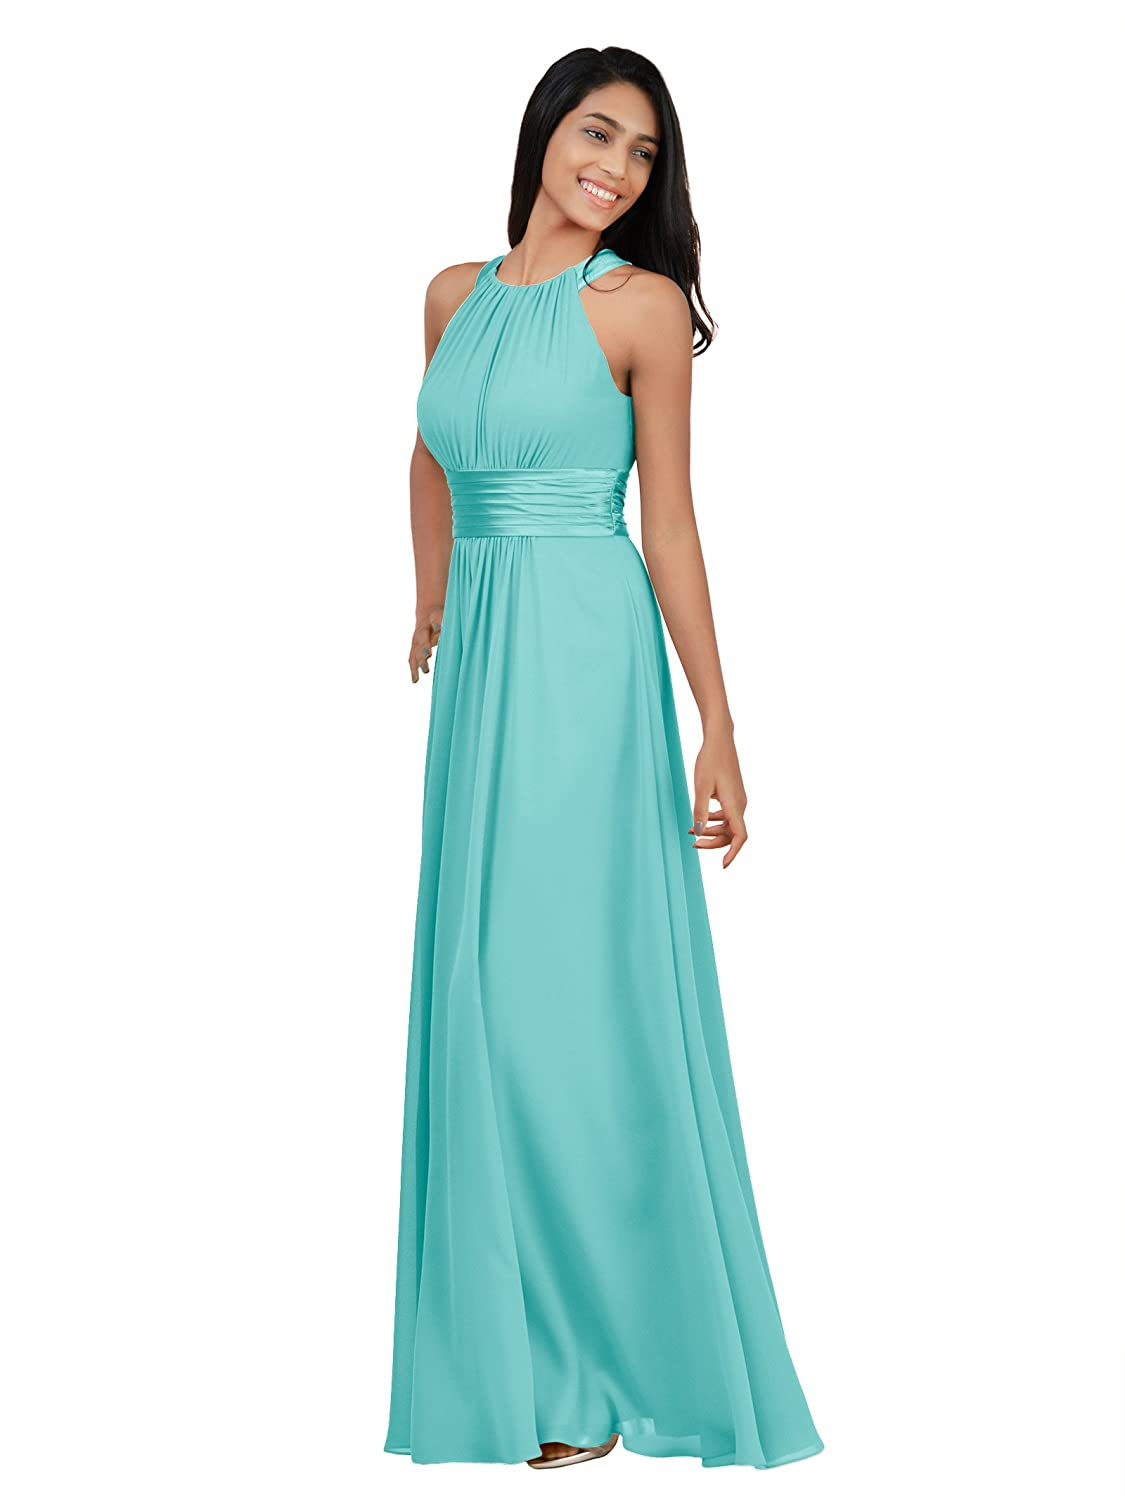 Alicepub Bridesmaid Maxi Dresses Long for Women Formal Evening Party ...